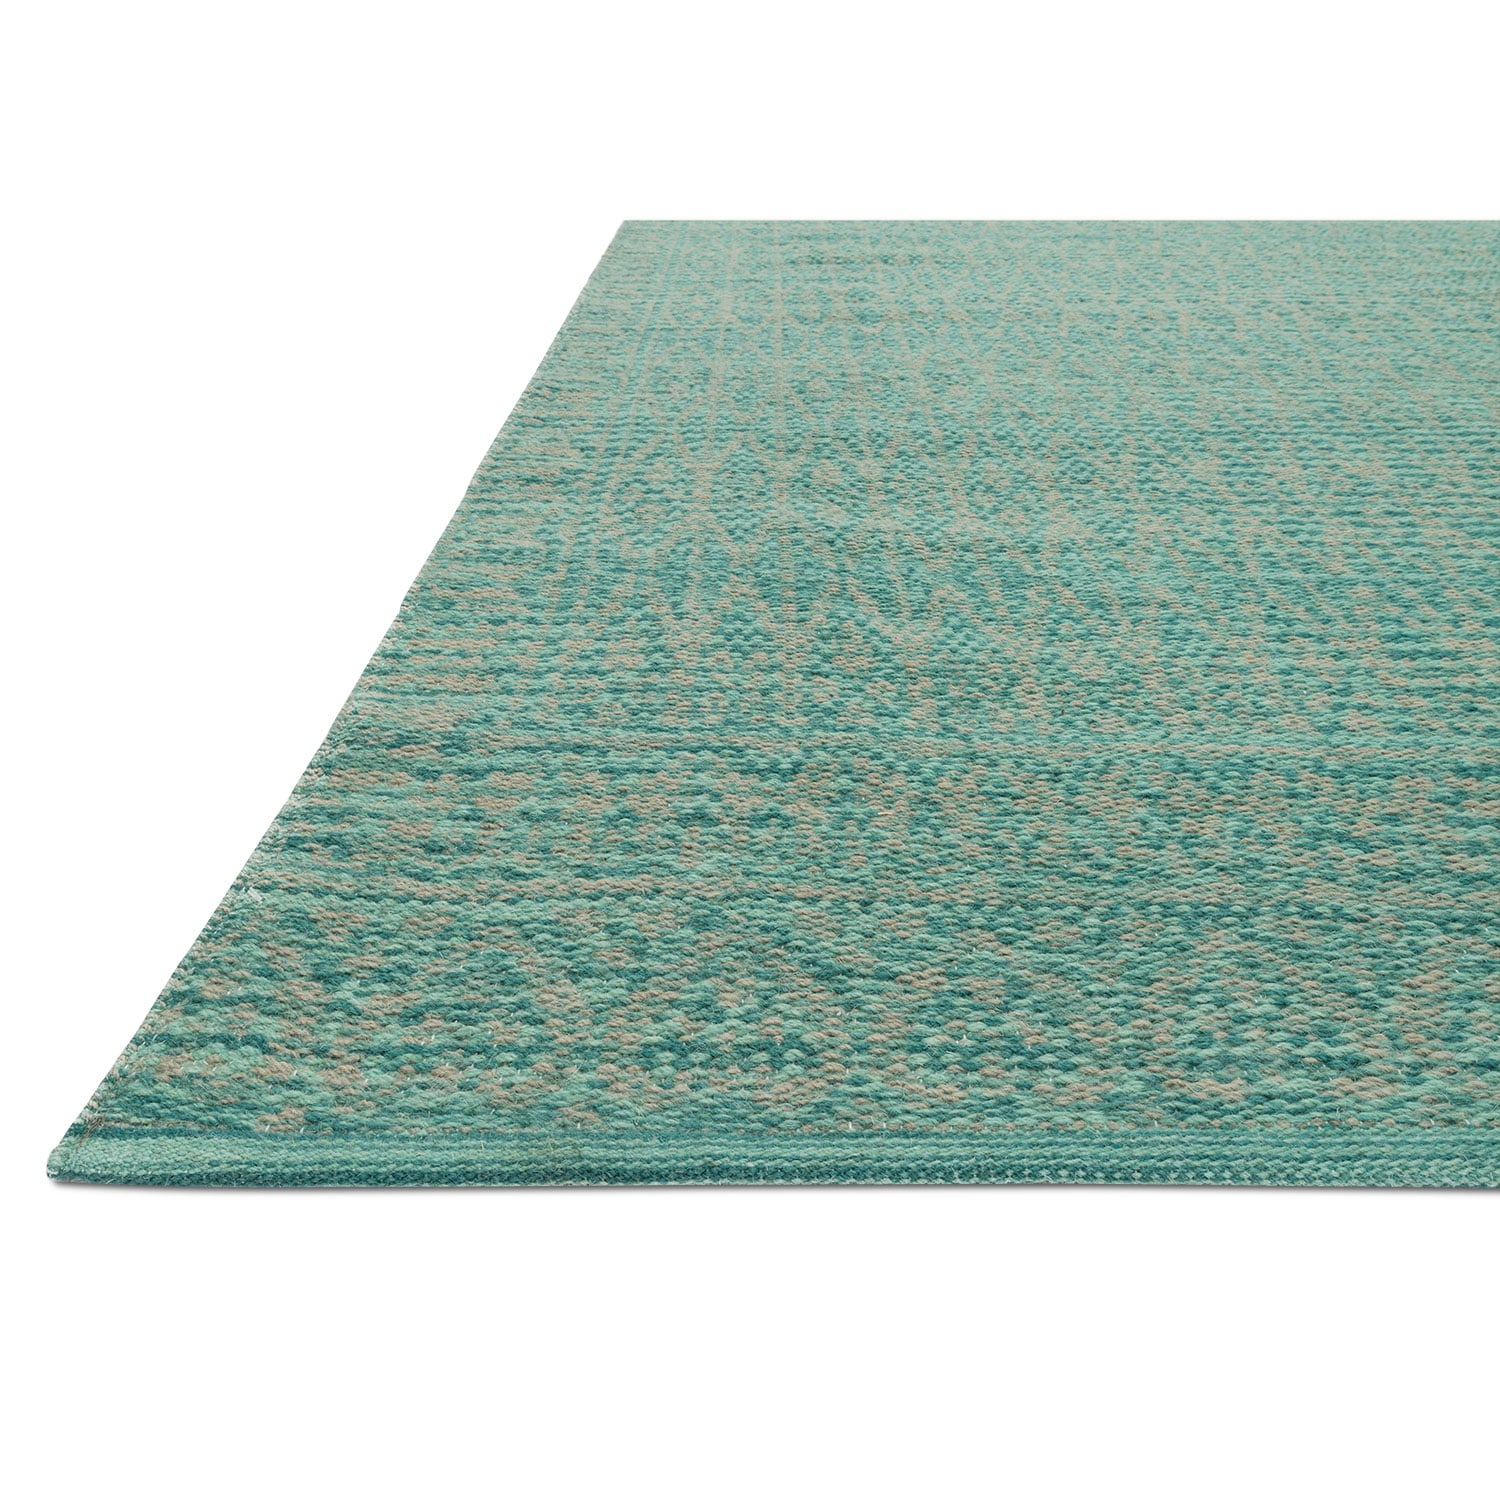 Emmie Kay 4 x 6 Rug Turquoise and Dove